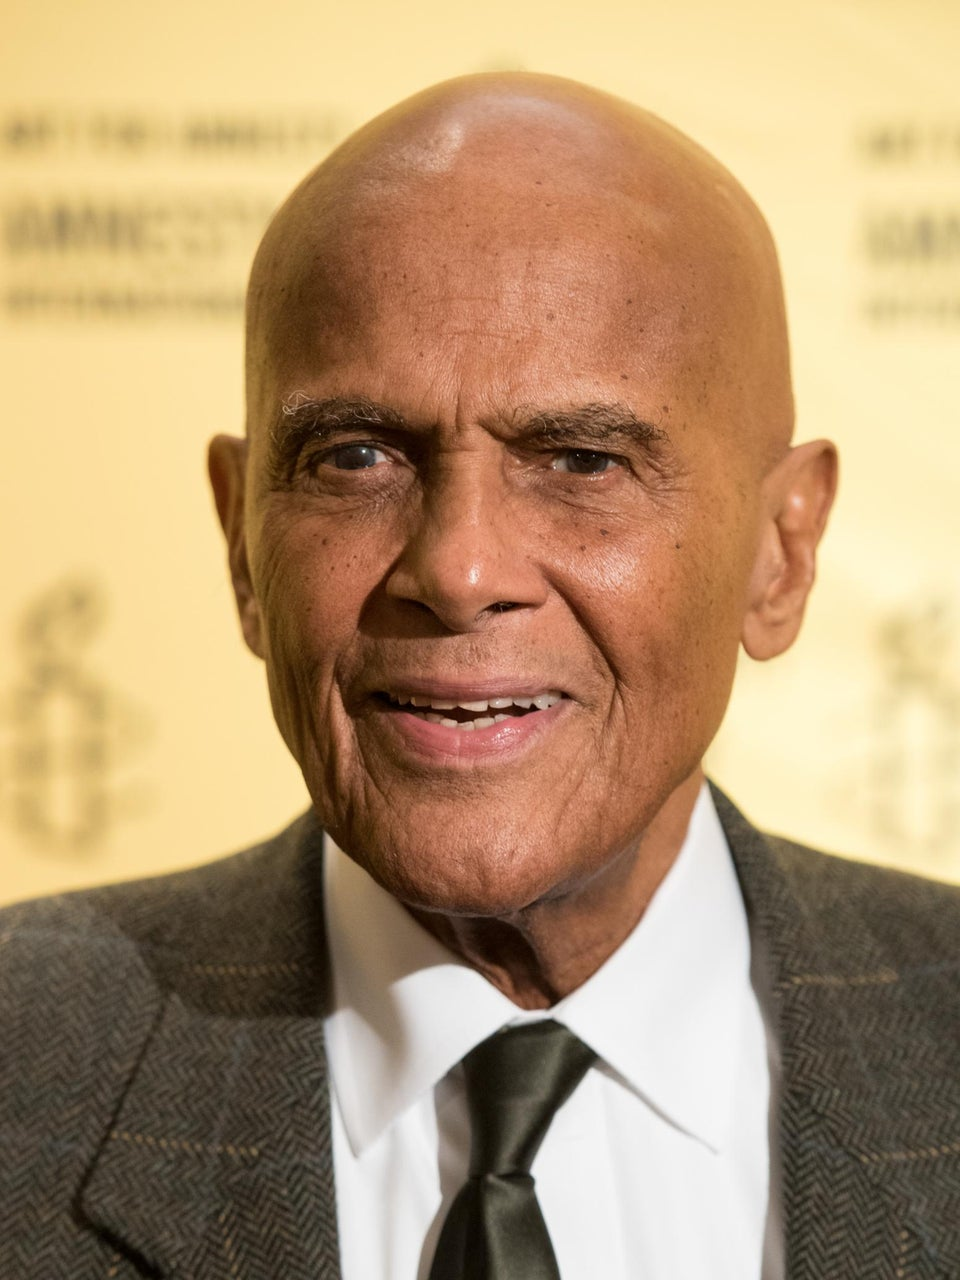 TONIGHT: Harry Belafonte, Susan Taylor Host Town Hall Teleconference to Discuss Race Relations